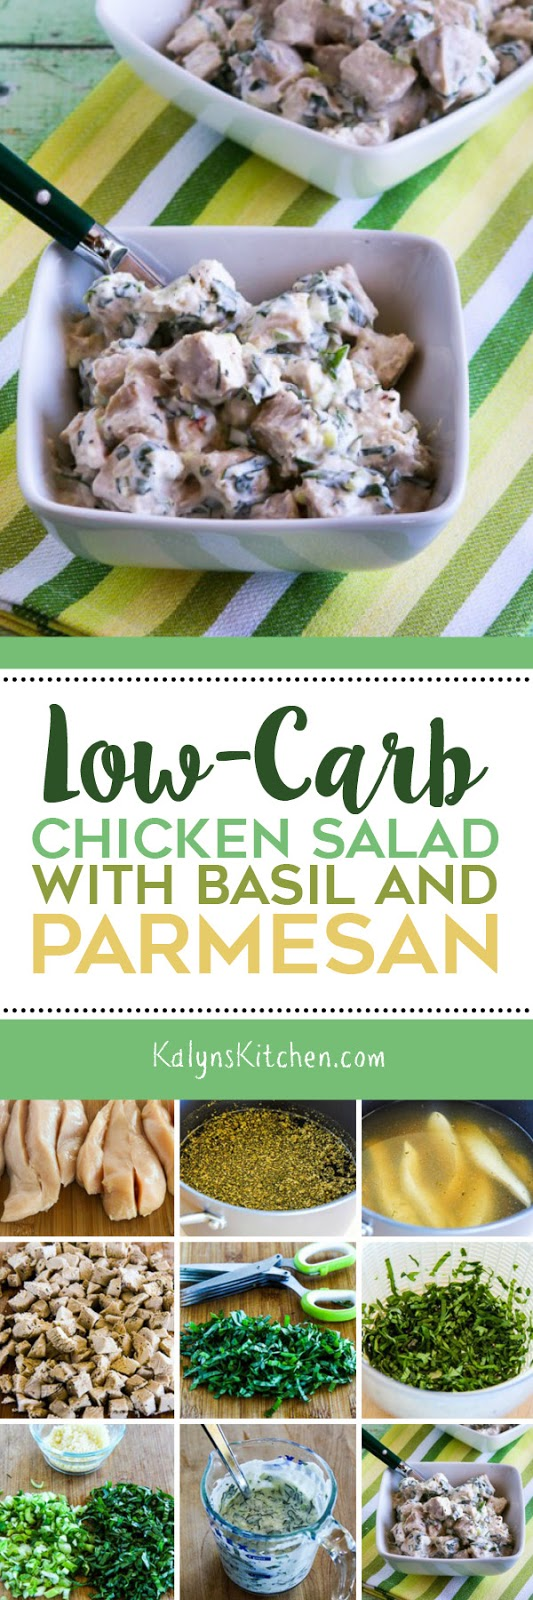 Low-Carb Chicken Salad with Basil and Parmesan found on KalynsKitchen ...